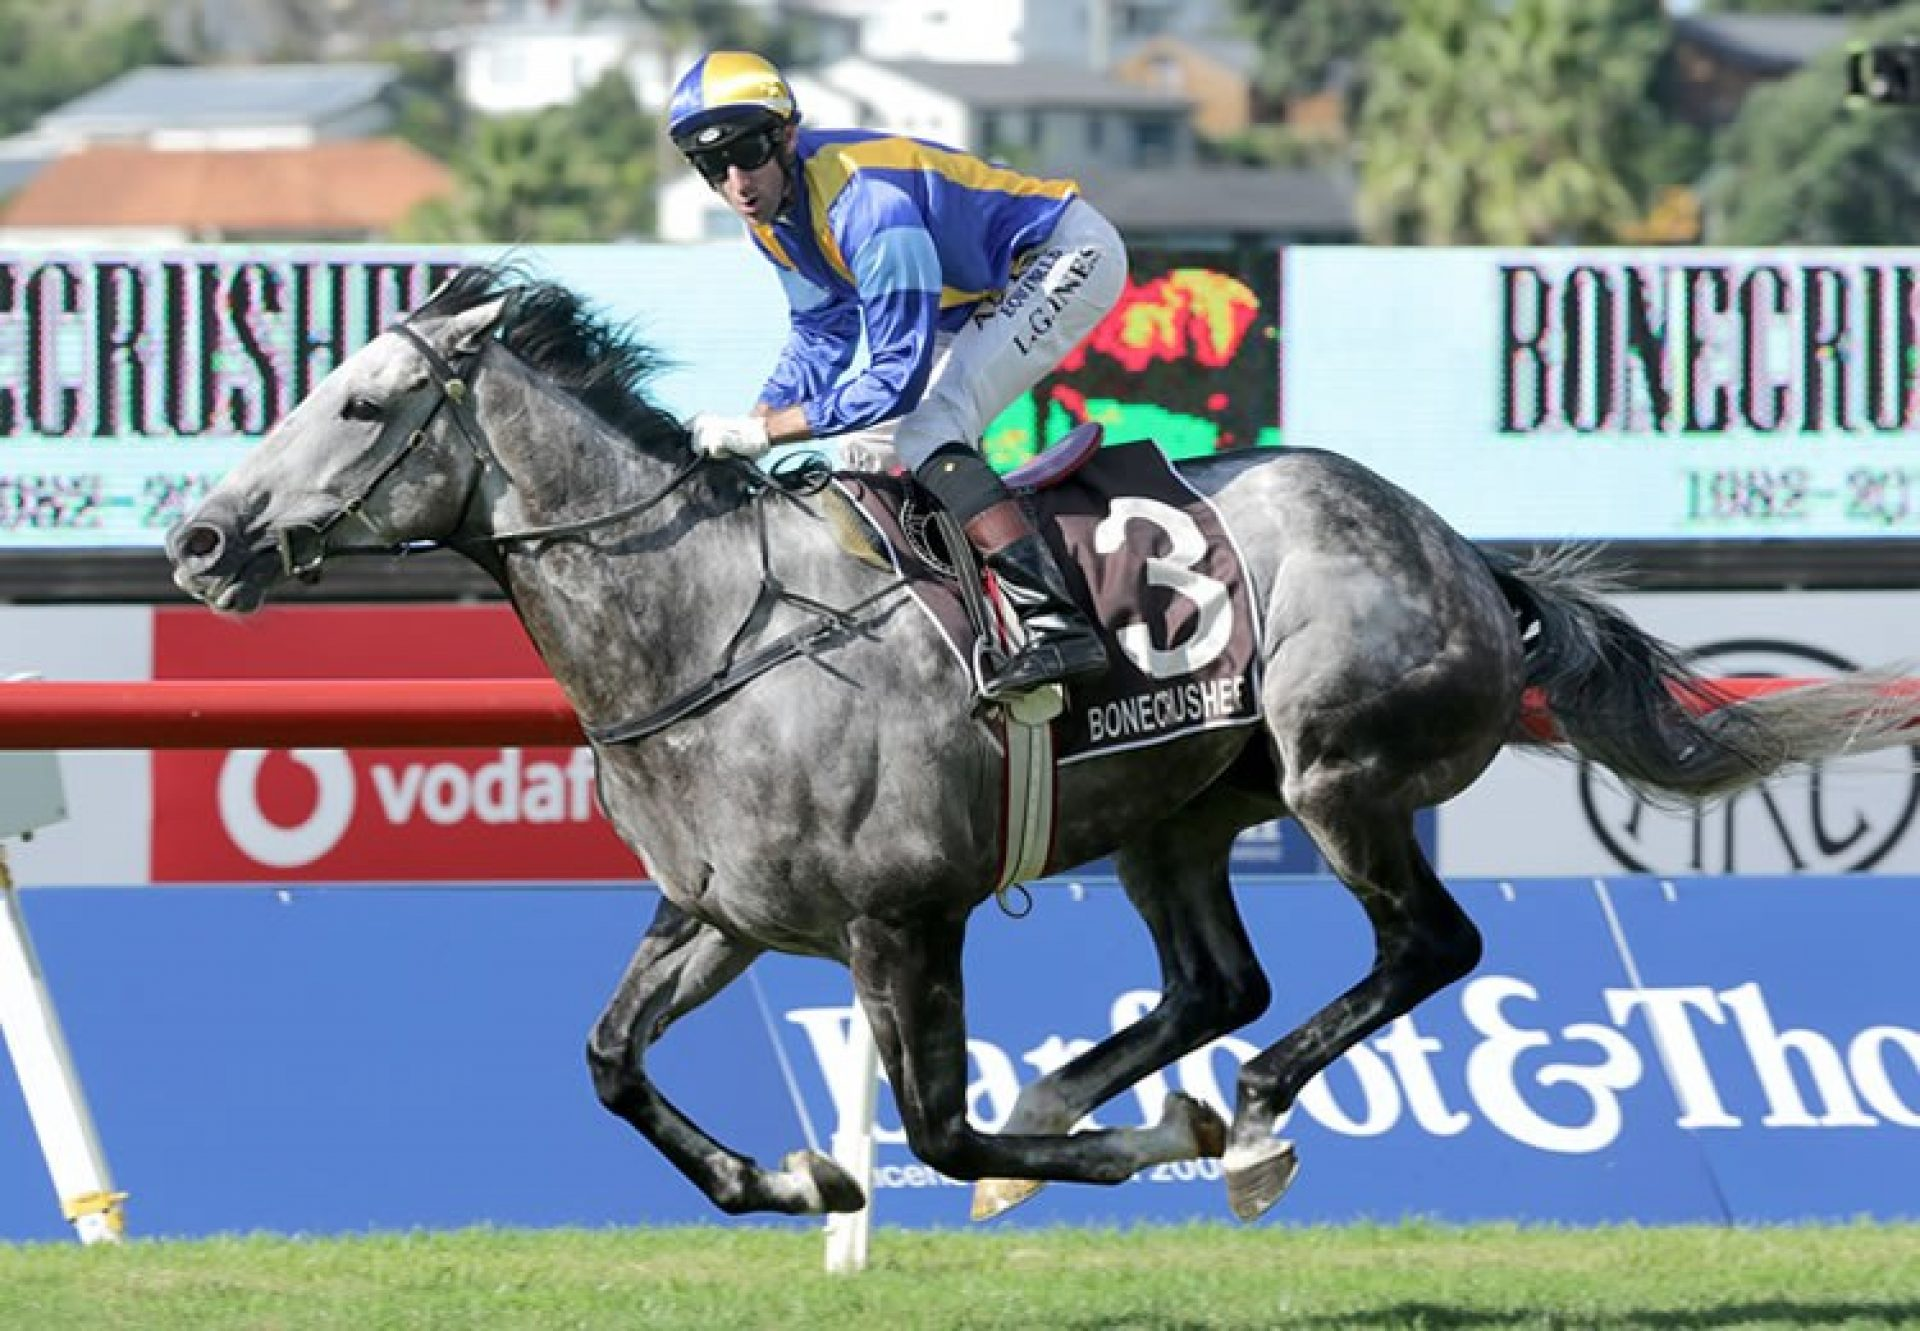 Saint Emilion (Mastercraftsman) winning the G1 Bonecrusher New Zealand Stakes